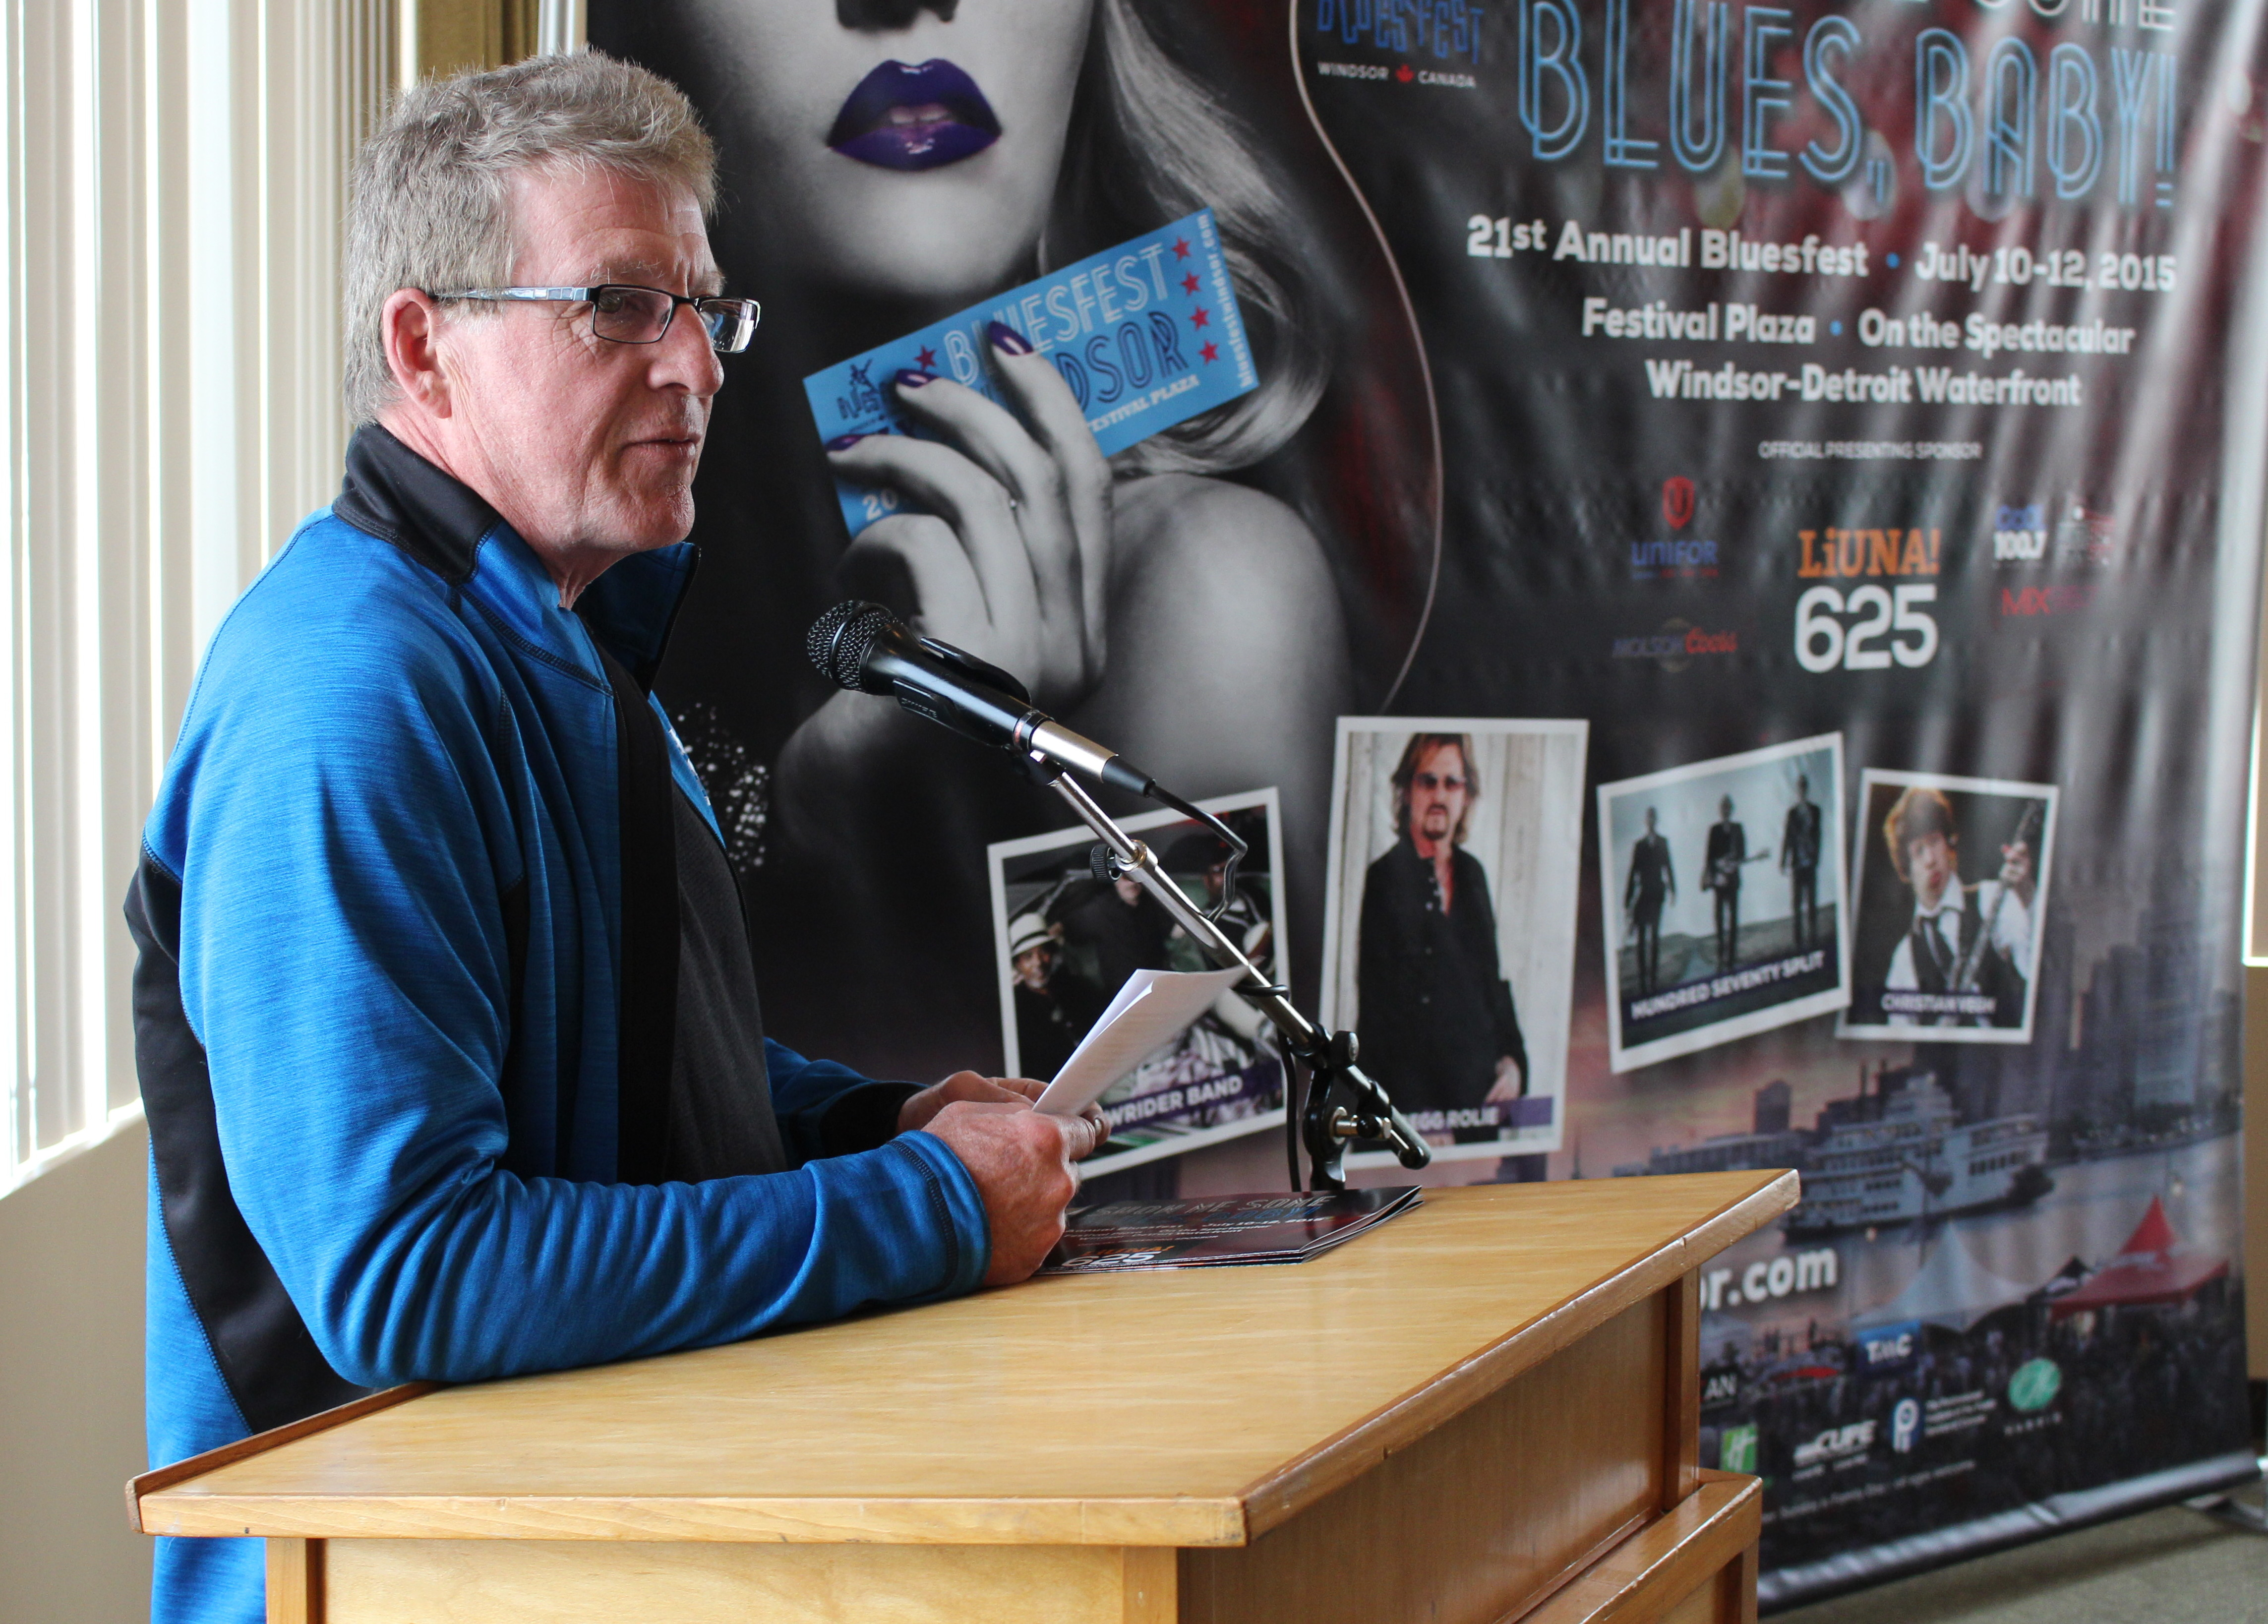 Producer for Bluesfest Windsor Ted Boomer talks about this year's line-up, May 6, 2015. (Photo by Mike Vlasveld)